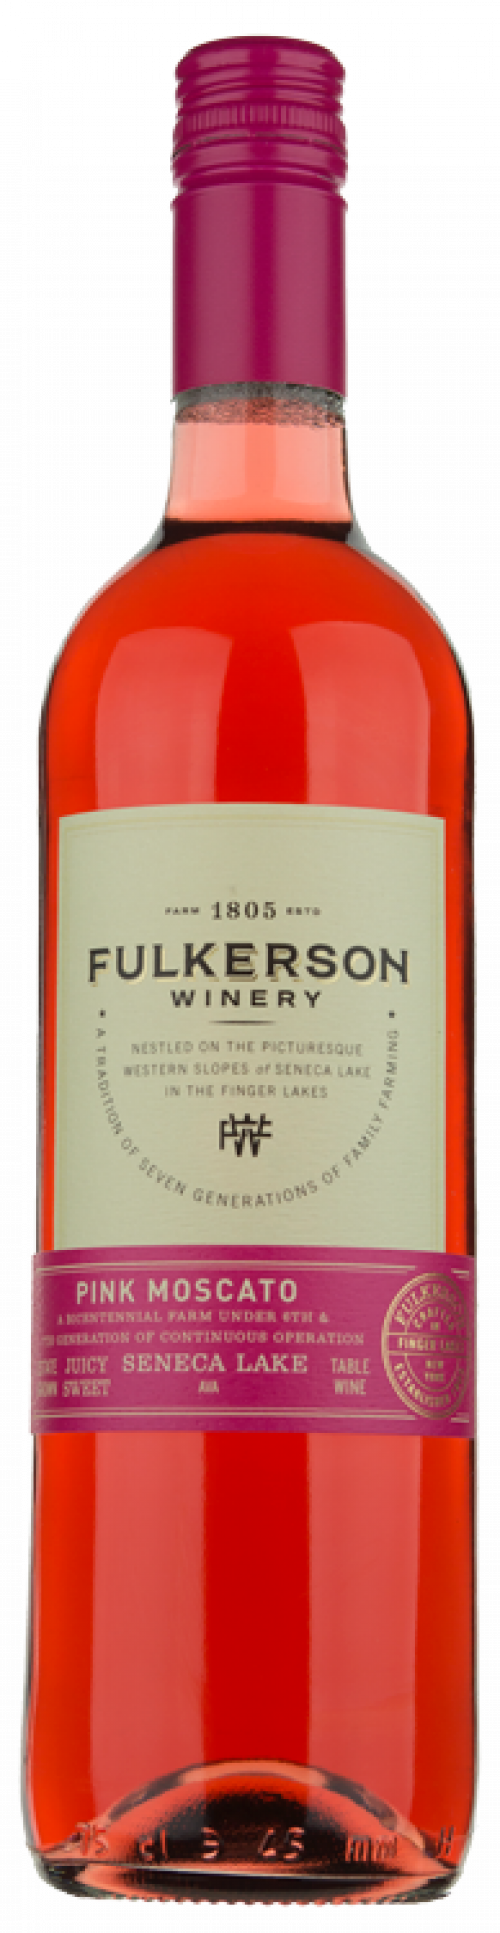 Fulkerson Pink Moscato 750ml NV